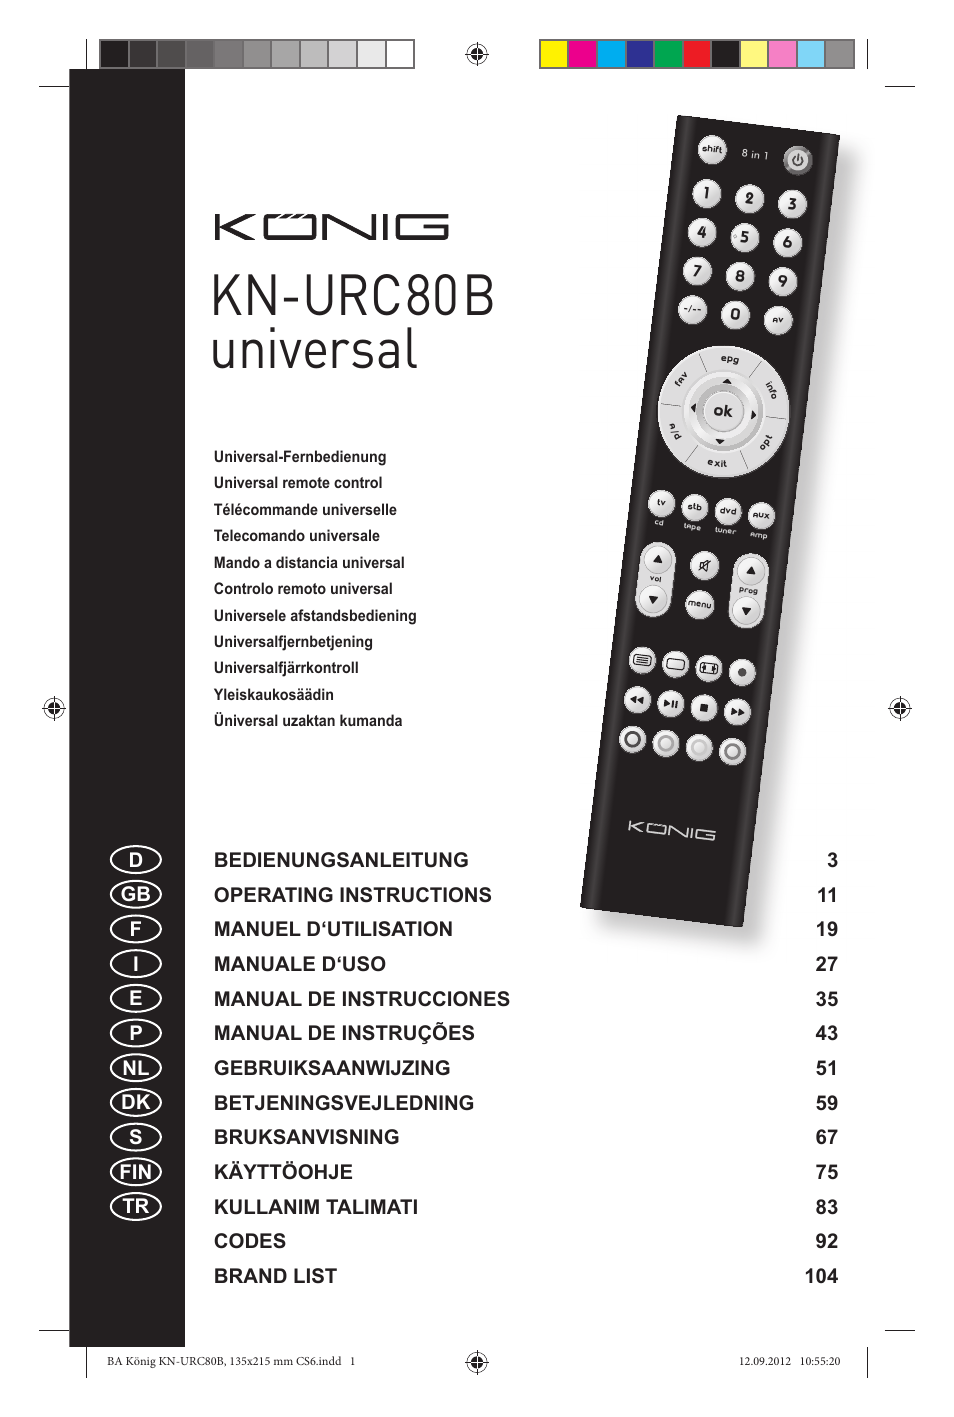 Konig Electronic 8:1 universal remote control User Manual